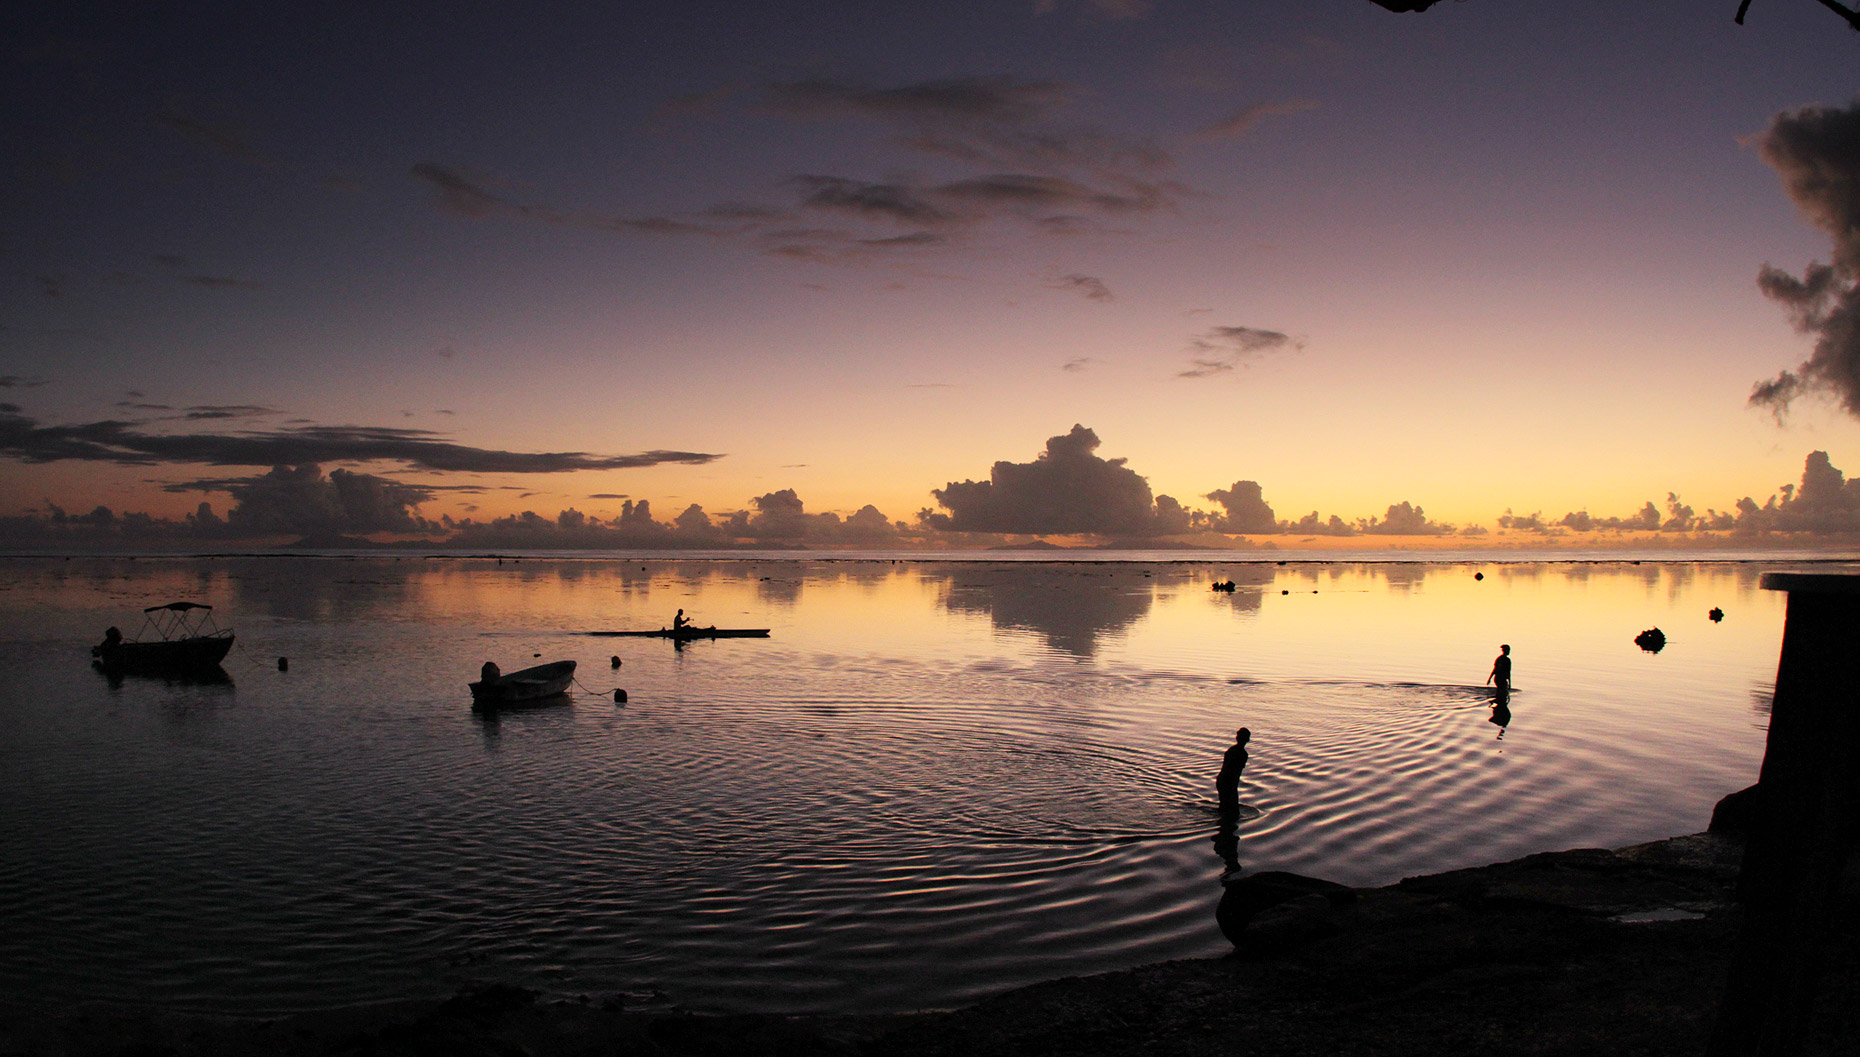 Tahiti Tourism Travel Photography | Geoffrey Ragatz